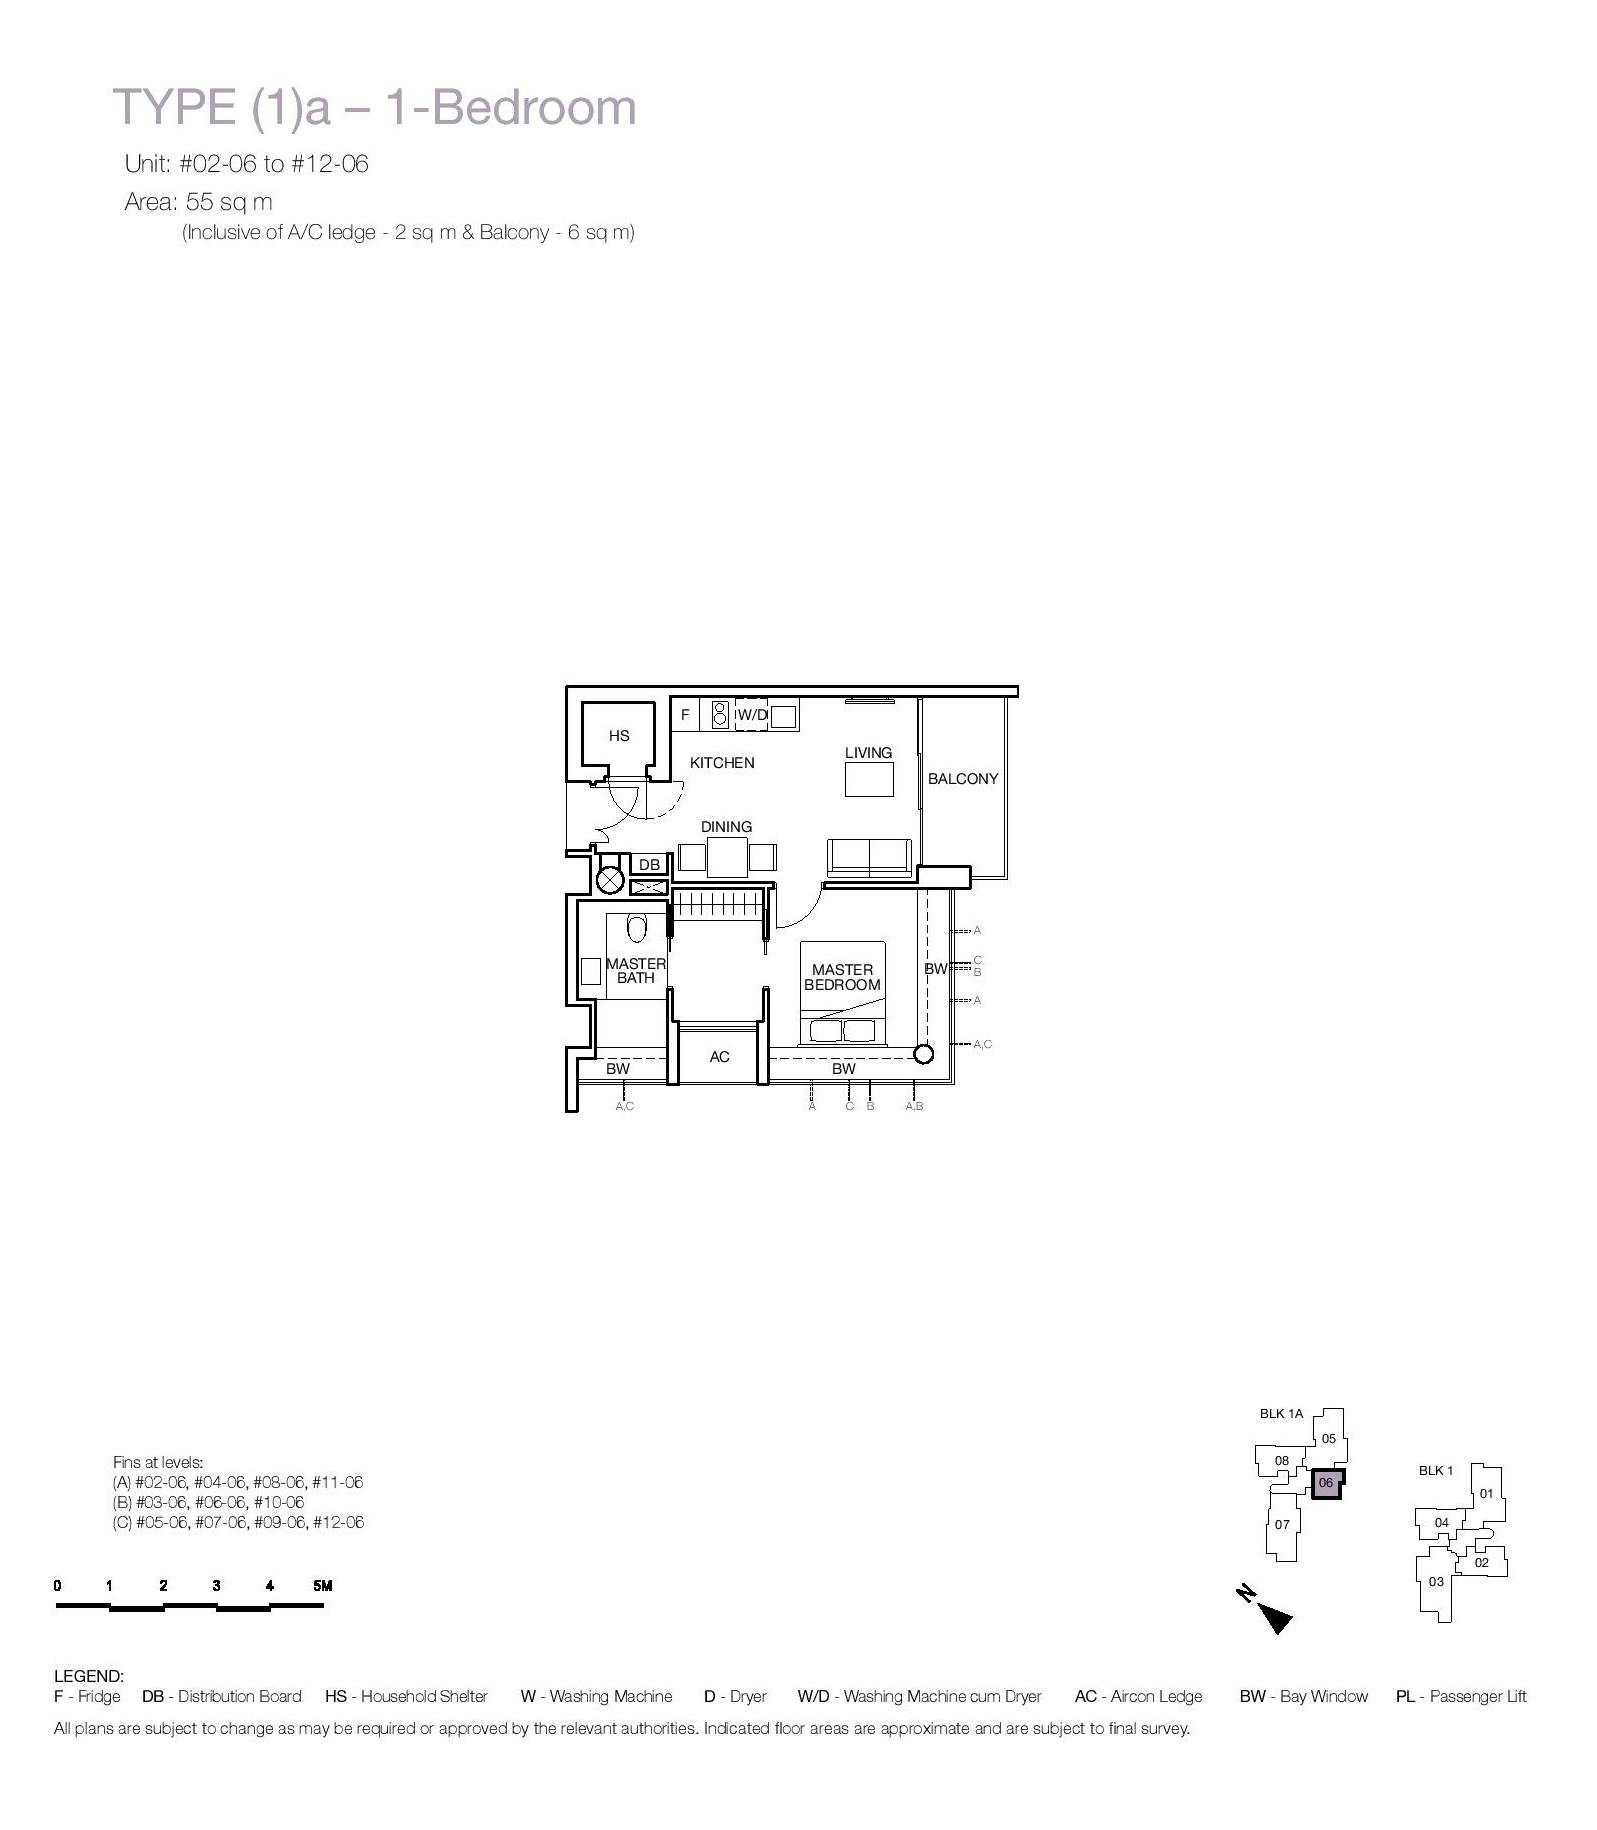 One Balmoral 1 Bedroom Floor Type (1)a Plans